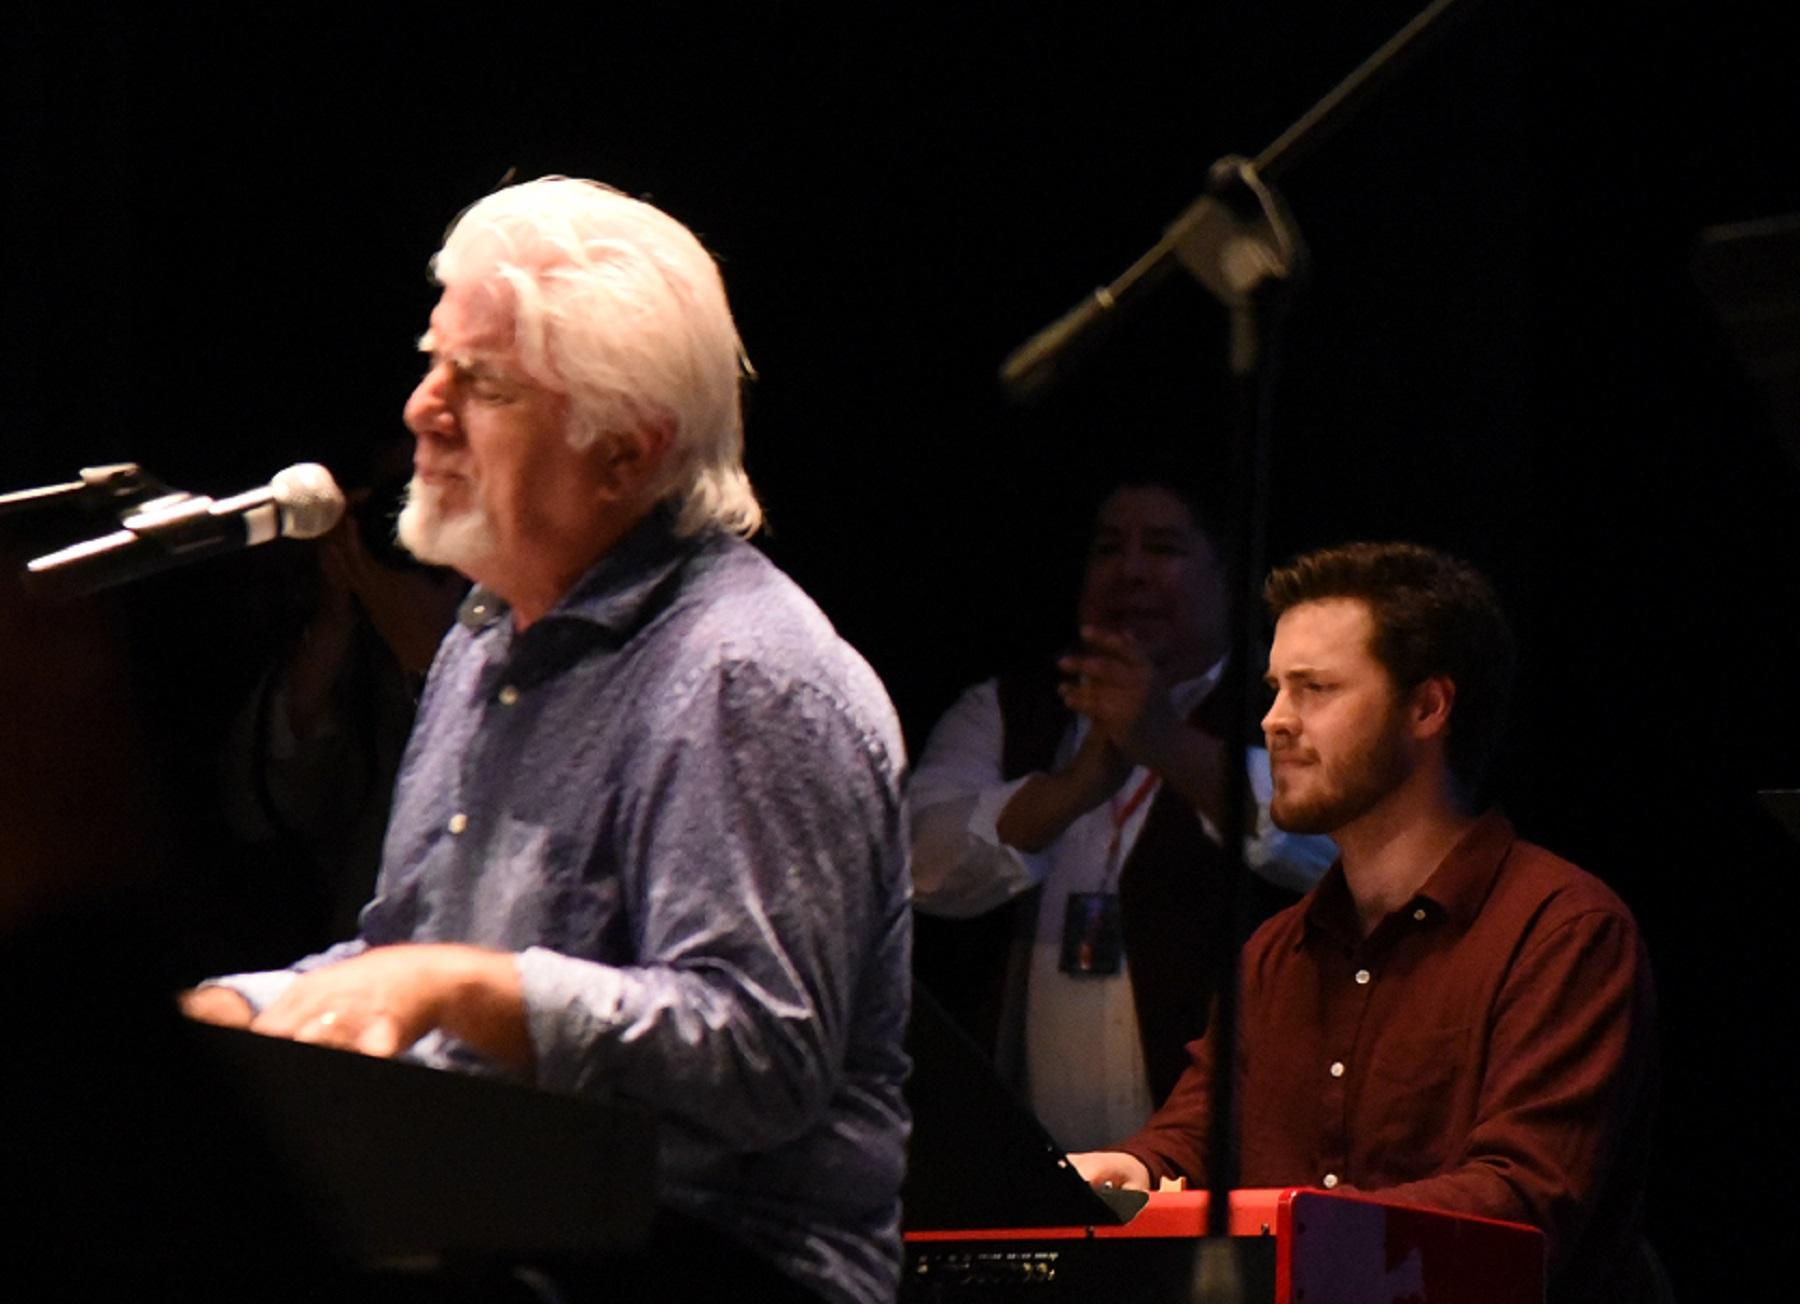 City College's New World Jazz Ensemble's pianist Benjamin Huston plays with Michael McDonald, five-time Grammy Award winner and former member of Steely Dan and The Doobie Brothers, at a benefit concert for the Alano Club of Santa Barbara on March 6, at La Cumbre Junior High School Theatre.  Earlier this year, McDonald came to City College and asked several City College students to play with him at the benefit.